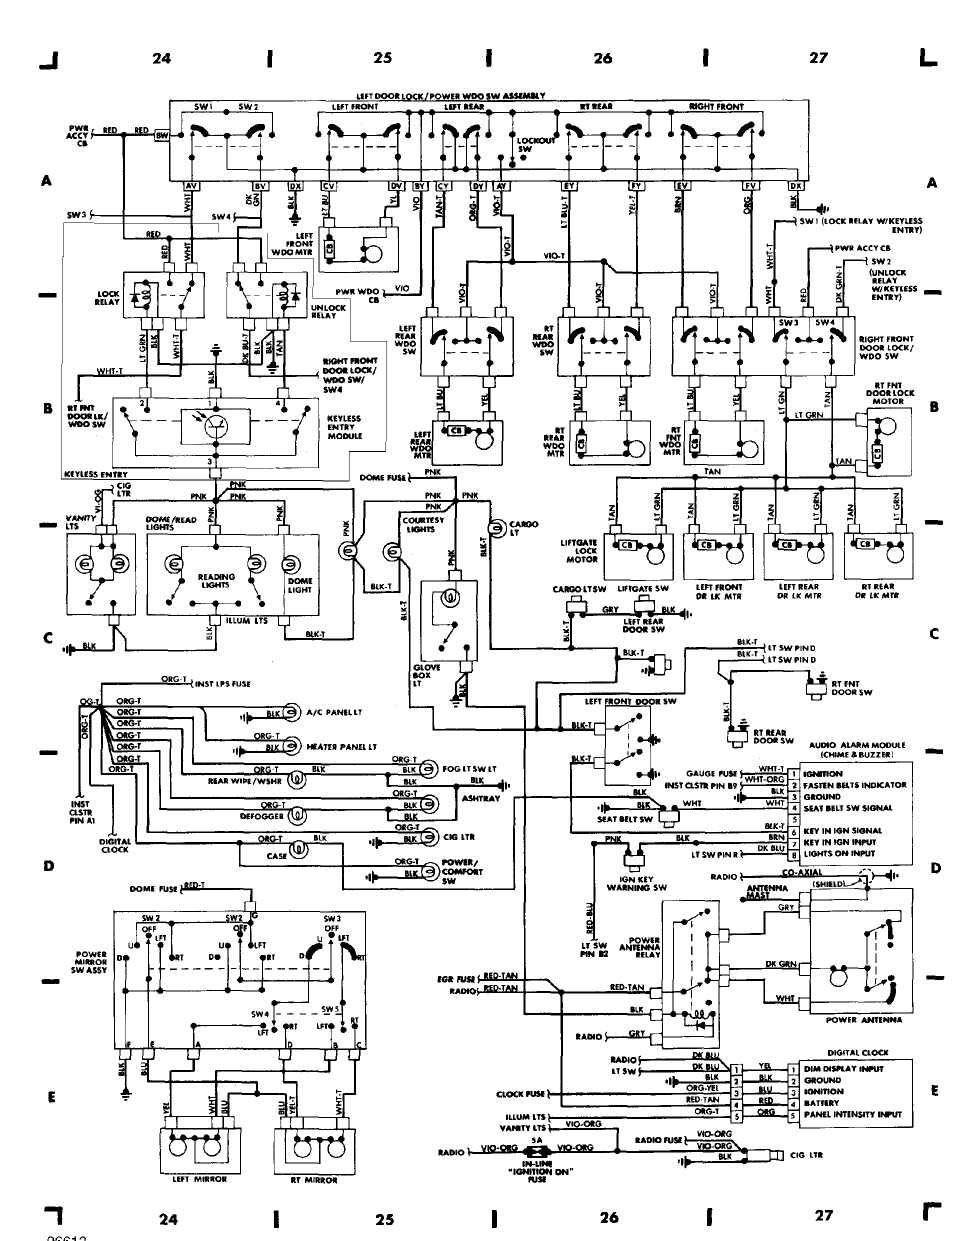 wiring_diagrams_html_61f5e0ad wiring diagrams 1984 1991 jeep cherokee (xj) jeep 95 jeep wrangler wiring harness diagram at panicattacktreatment.co